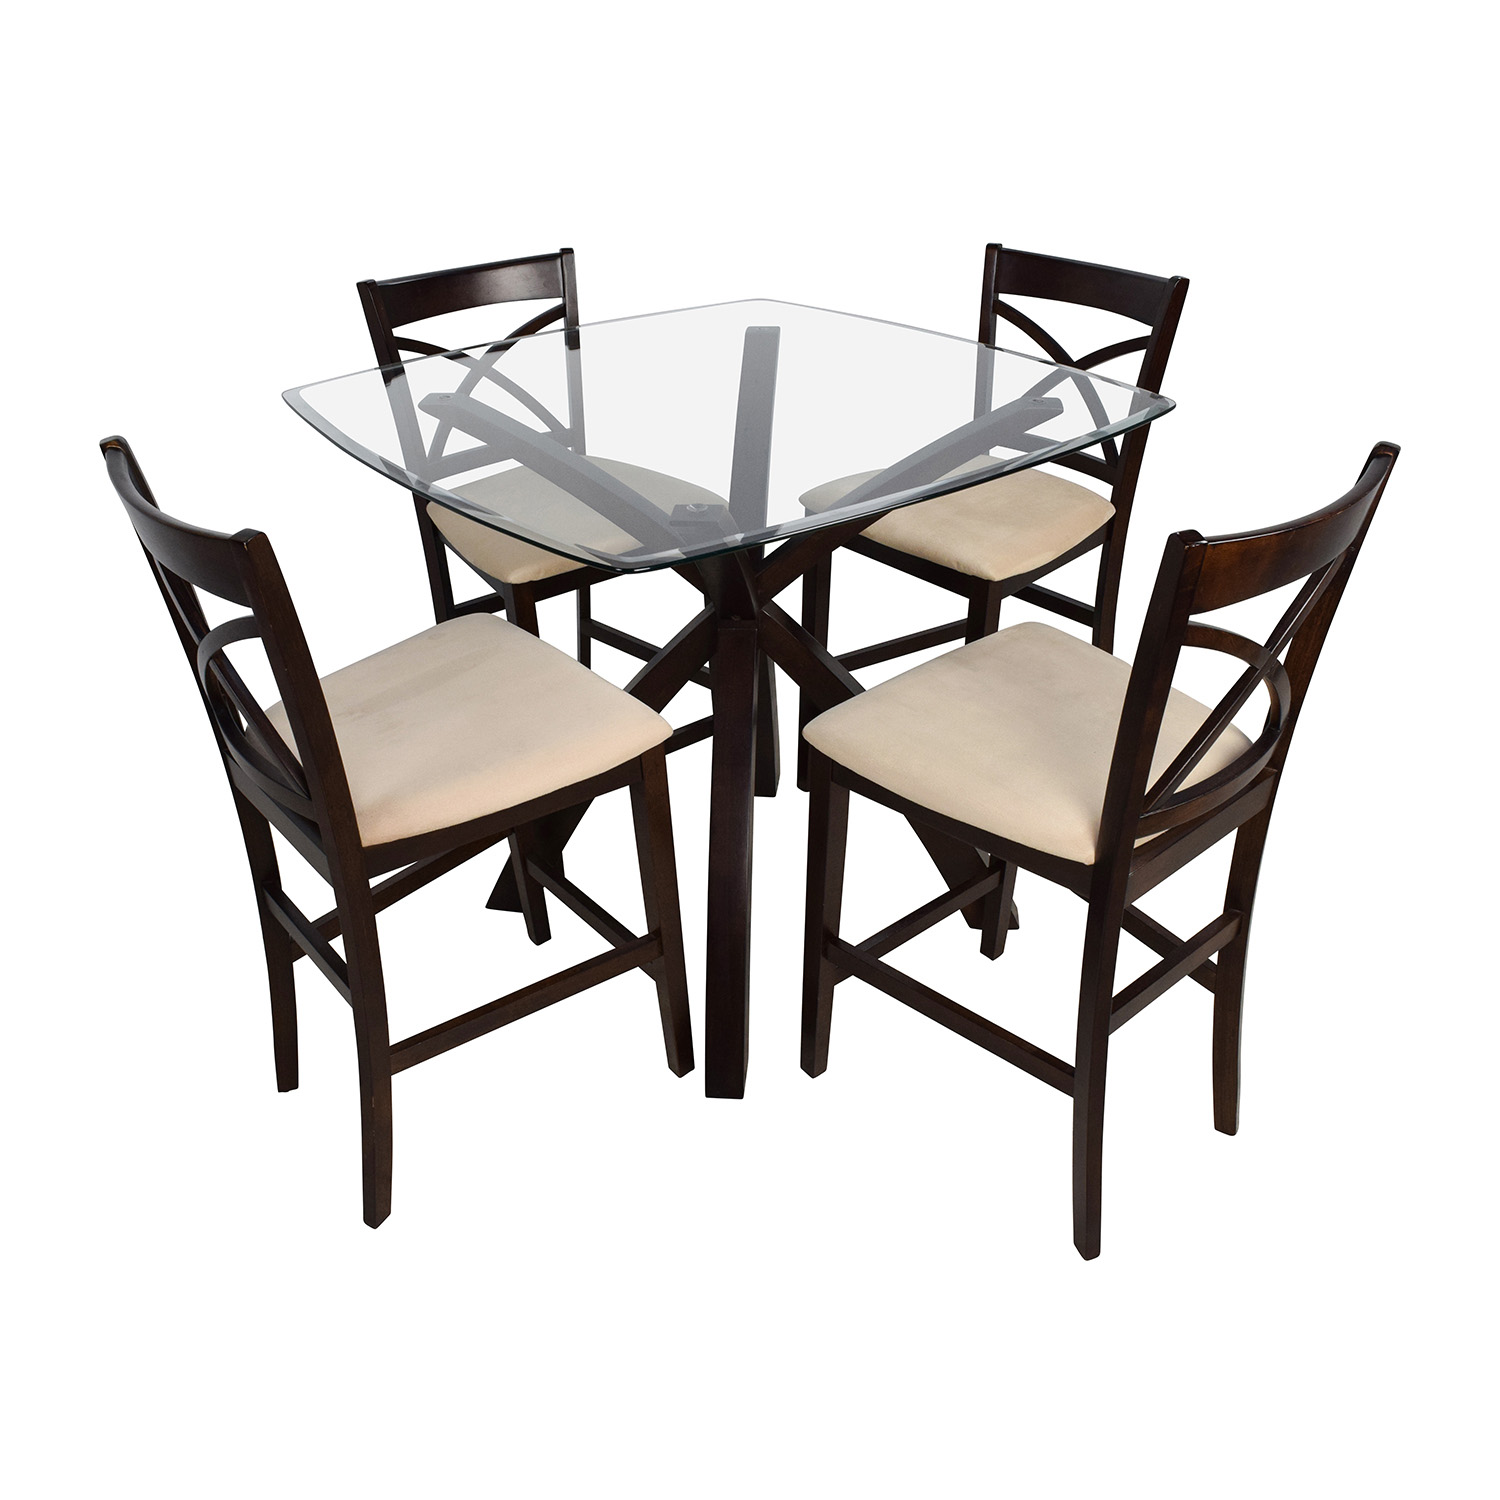 Counter Height Glass and Wood Table with Four Chairs on sale